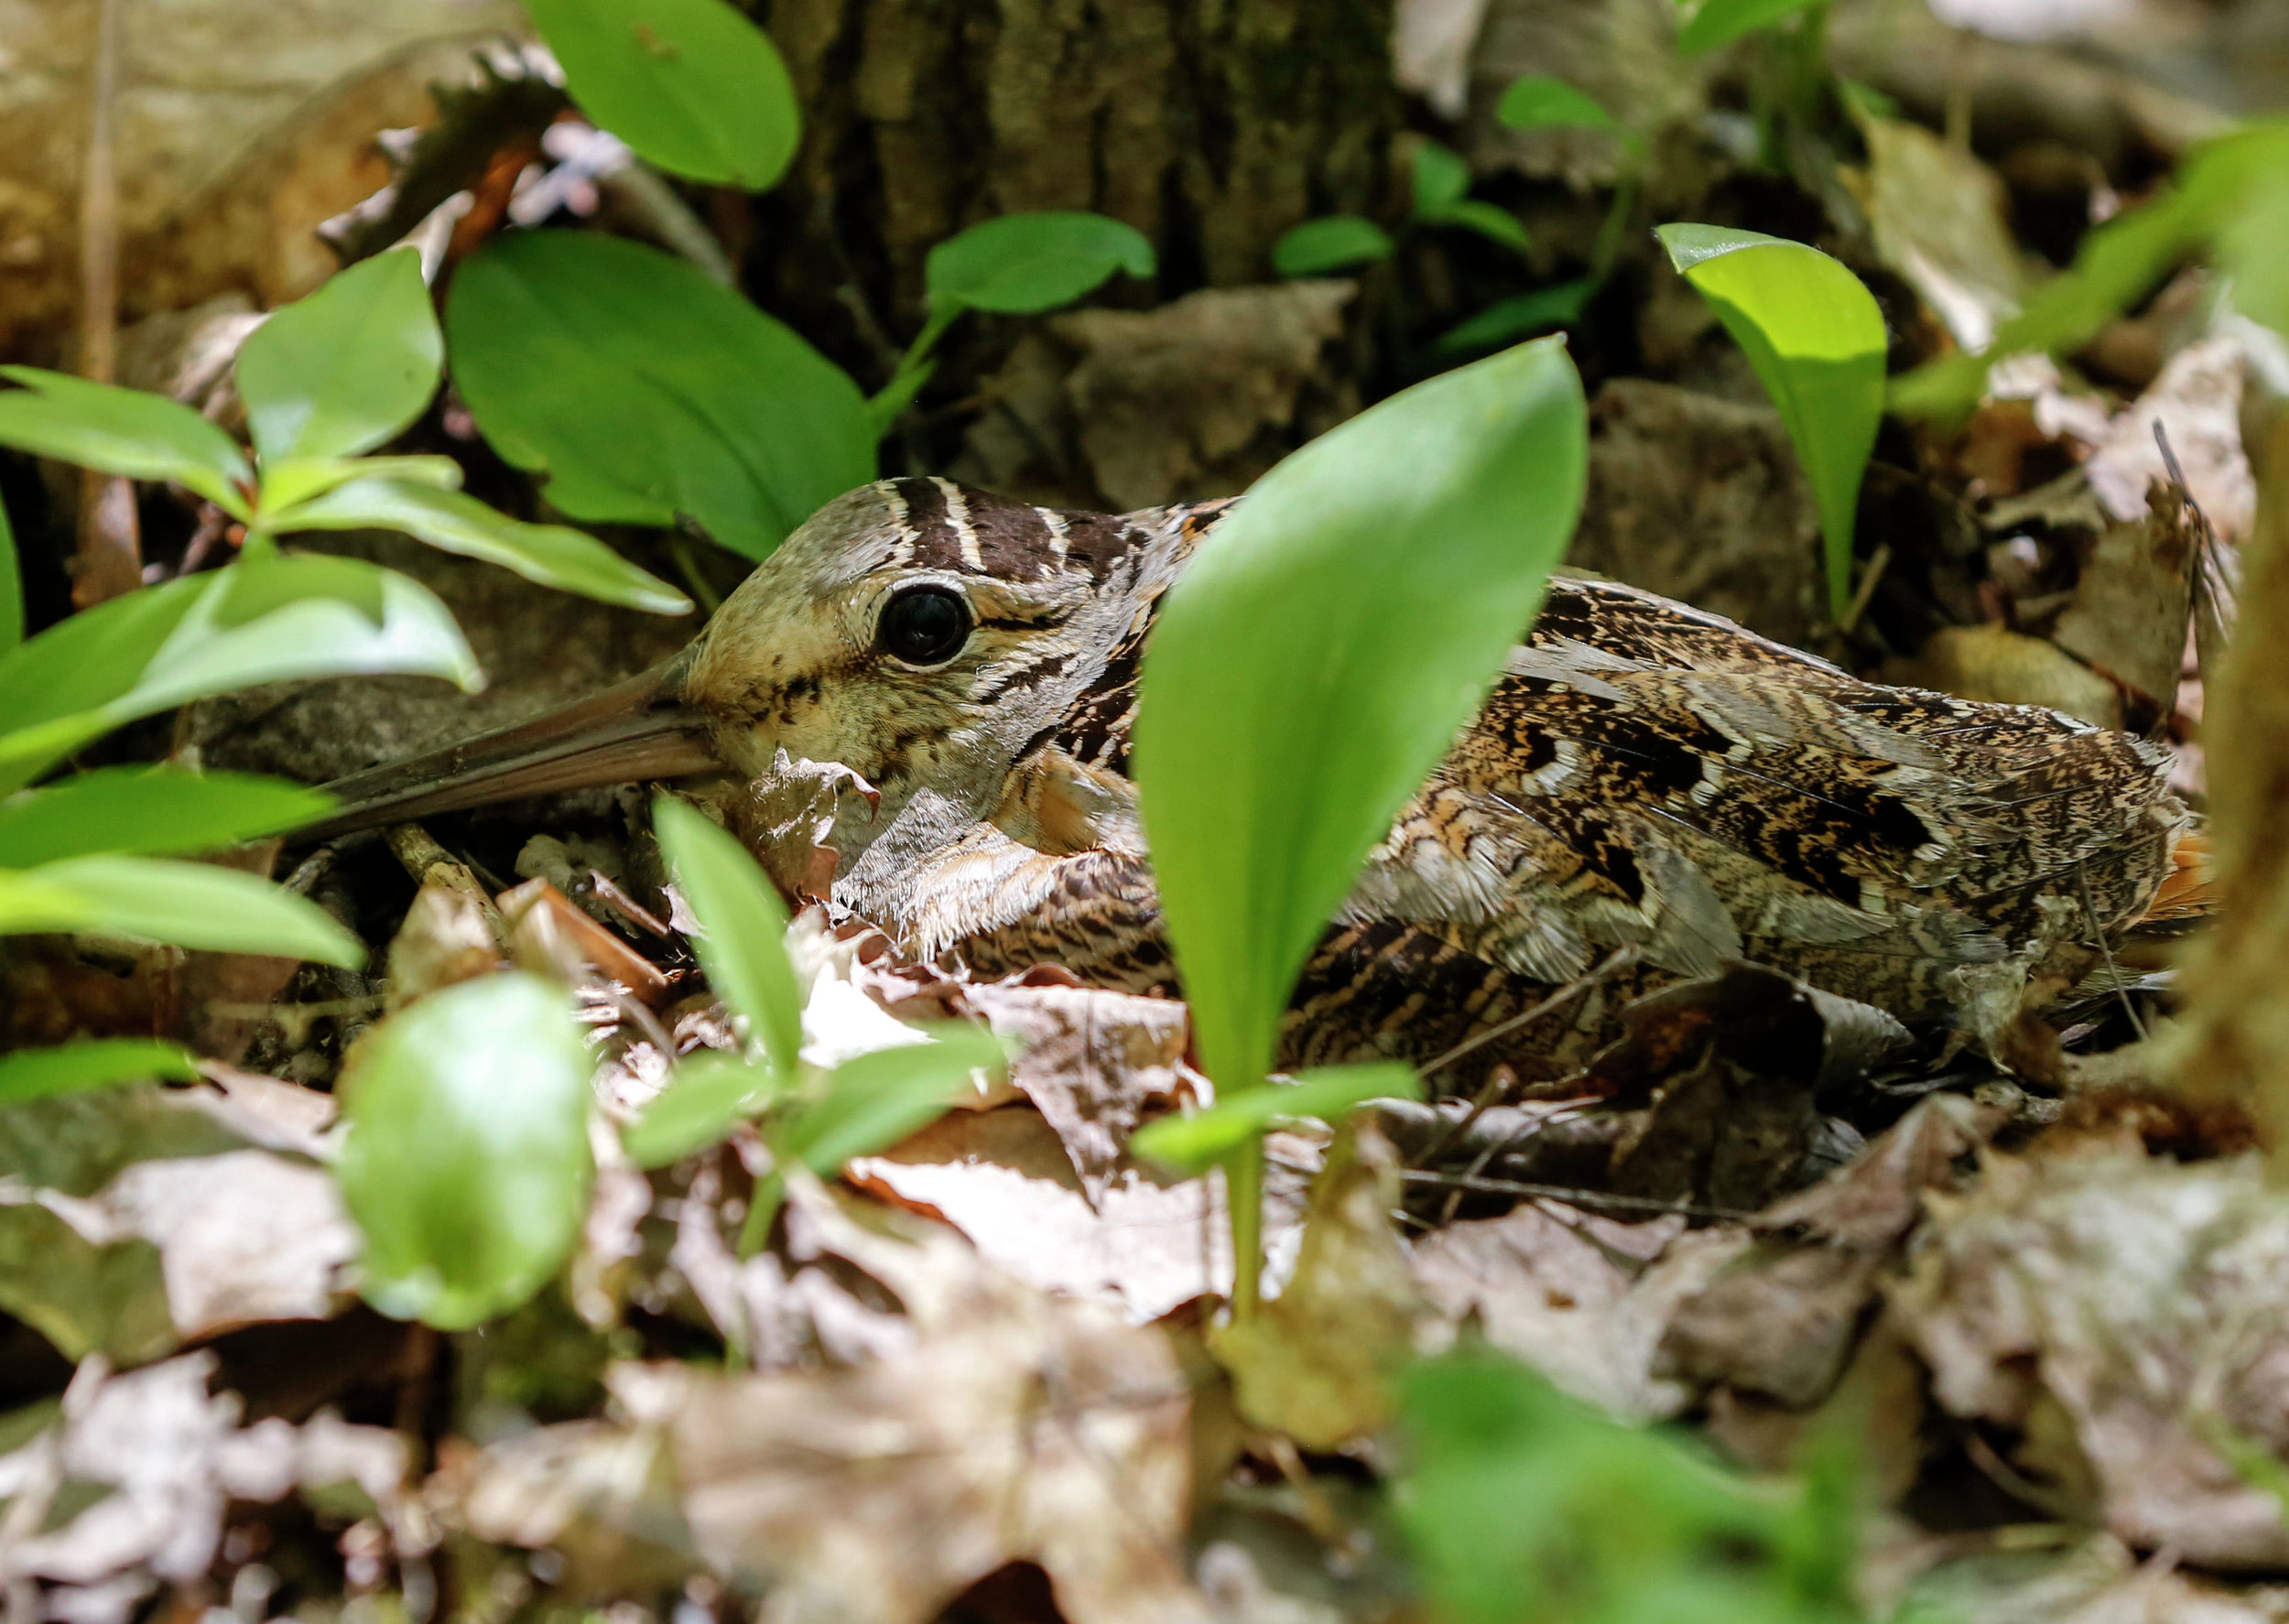 A woodcock hen sits still on her nest Saturday, June 1.